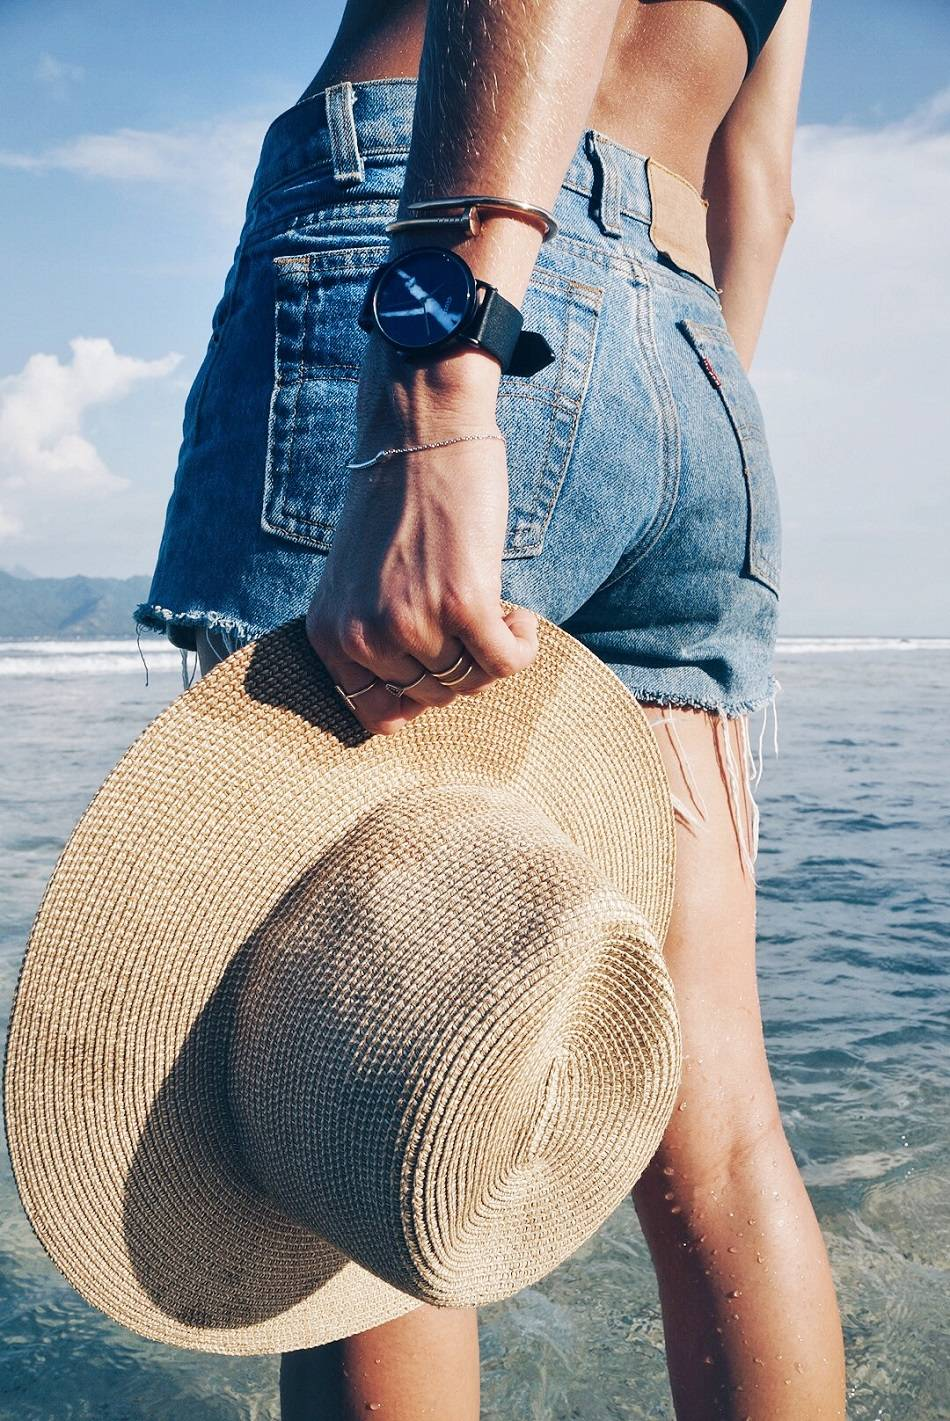 straw hat and vintage levi's shorts on beach with cluse marble watch